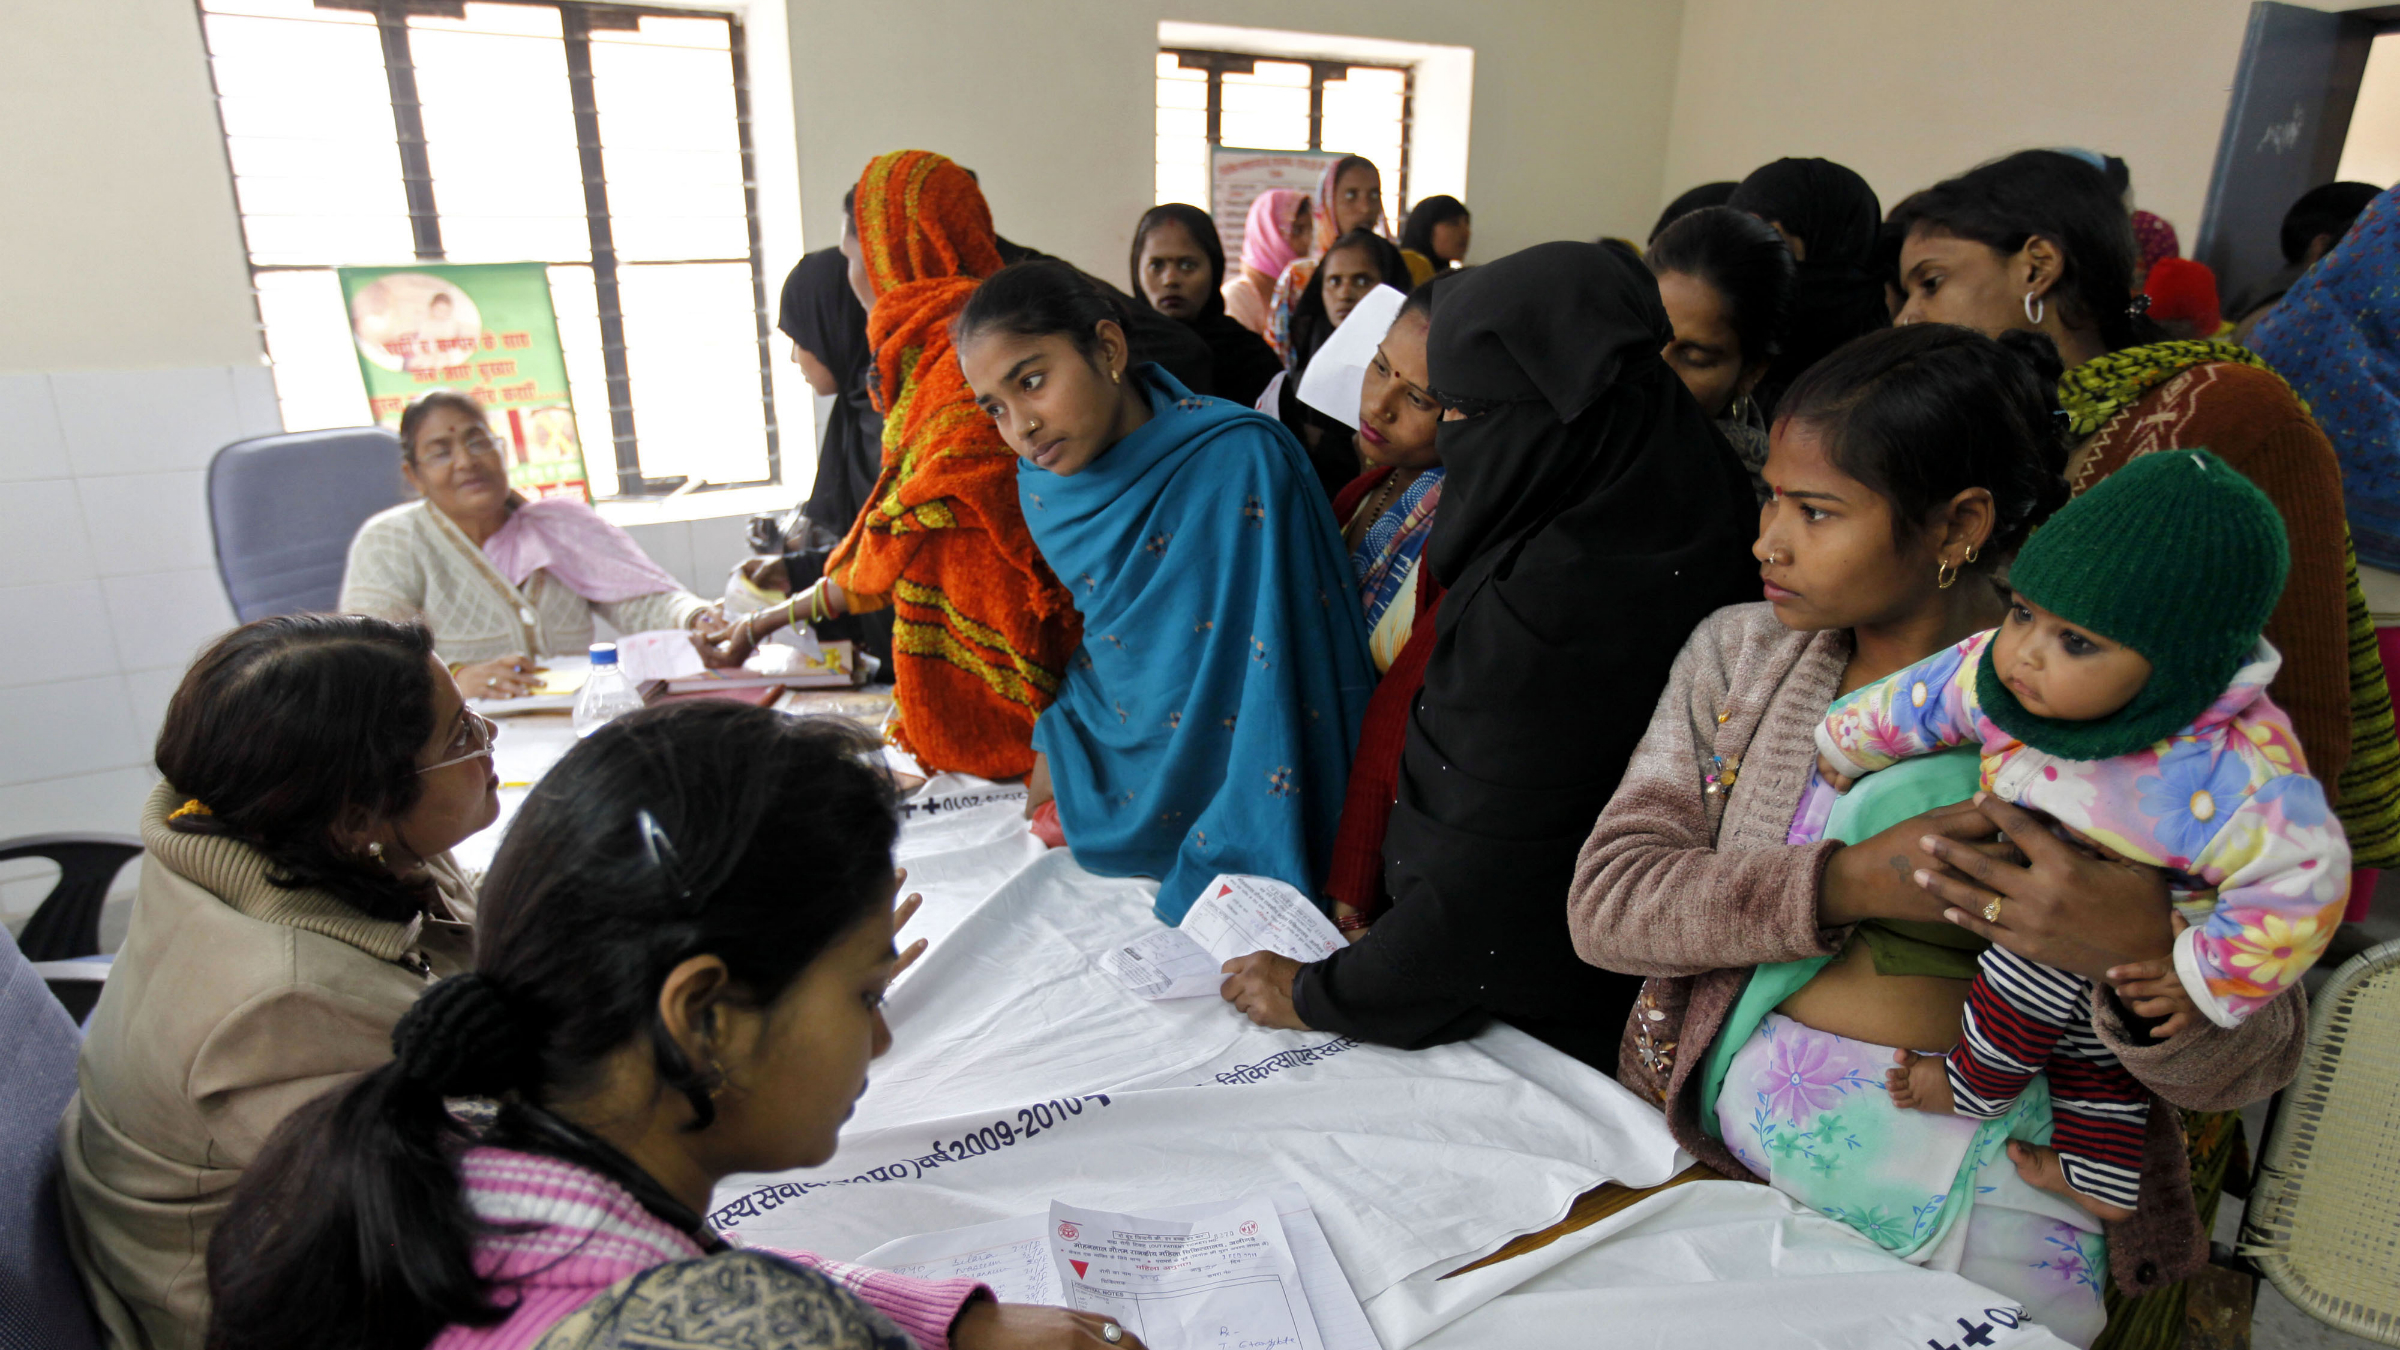 In this Feb. 4, 2011 photo, patients get registered for a free sterilization procedure at the Mohan Lal Gautam District Women's Hospital in Aligarh, India. Every day dozens of women line up at this hospital for a free sterilization procedure that will spare them the risk and cost of having another child. The hospital's three staff doctors race through seeing some 500 patients a day needing help with childbirth, pelvic inflammatory diseases, abortions and other treatments at subsidized costs. Each year, the cost of health care pushes some 39 million people into poverty, with patients shouldering up to 80 percent of India's medical costs. (AP Photo/Mustafa Quraishi